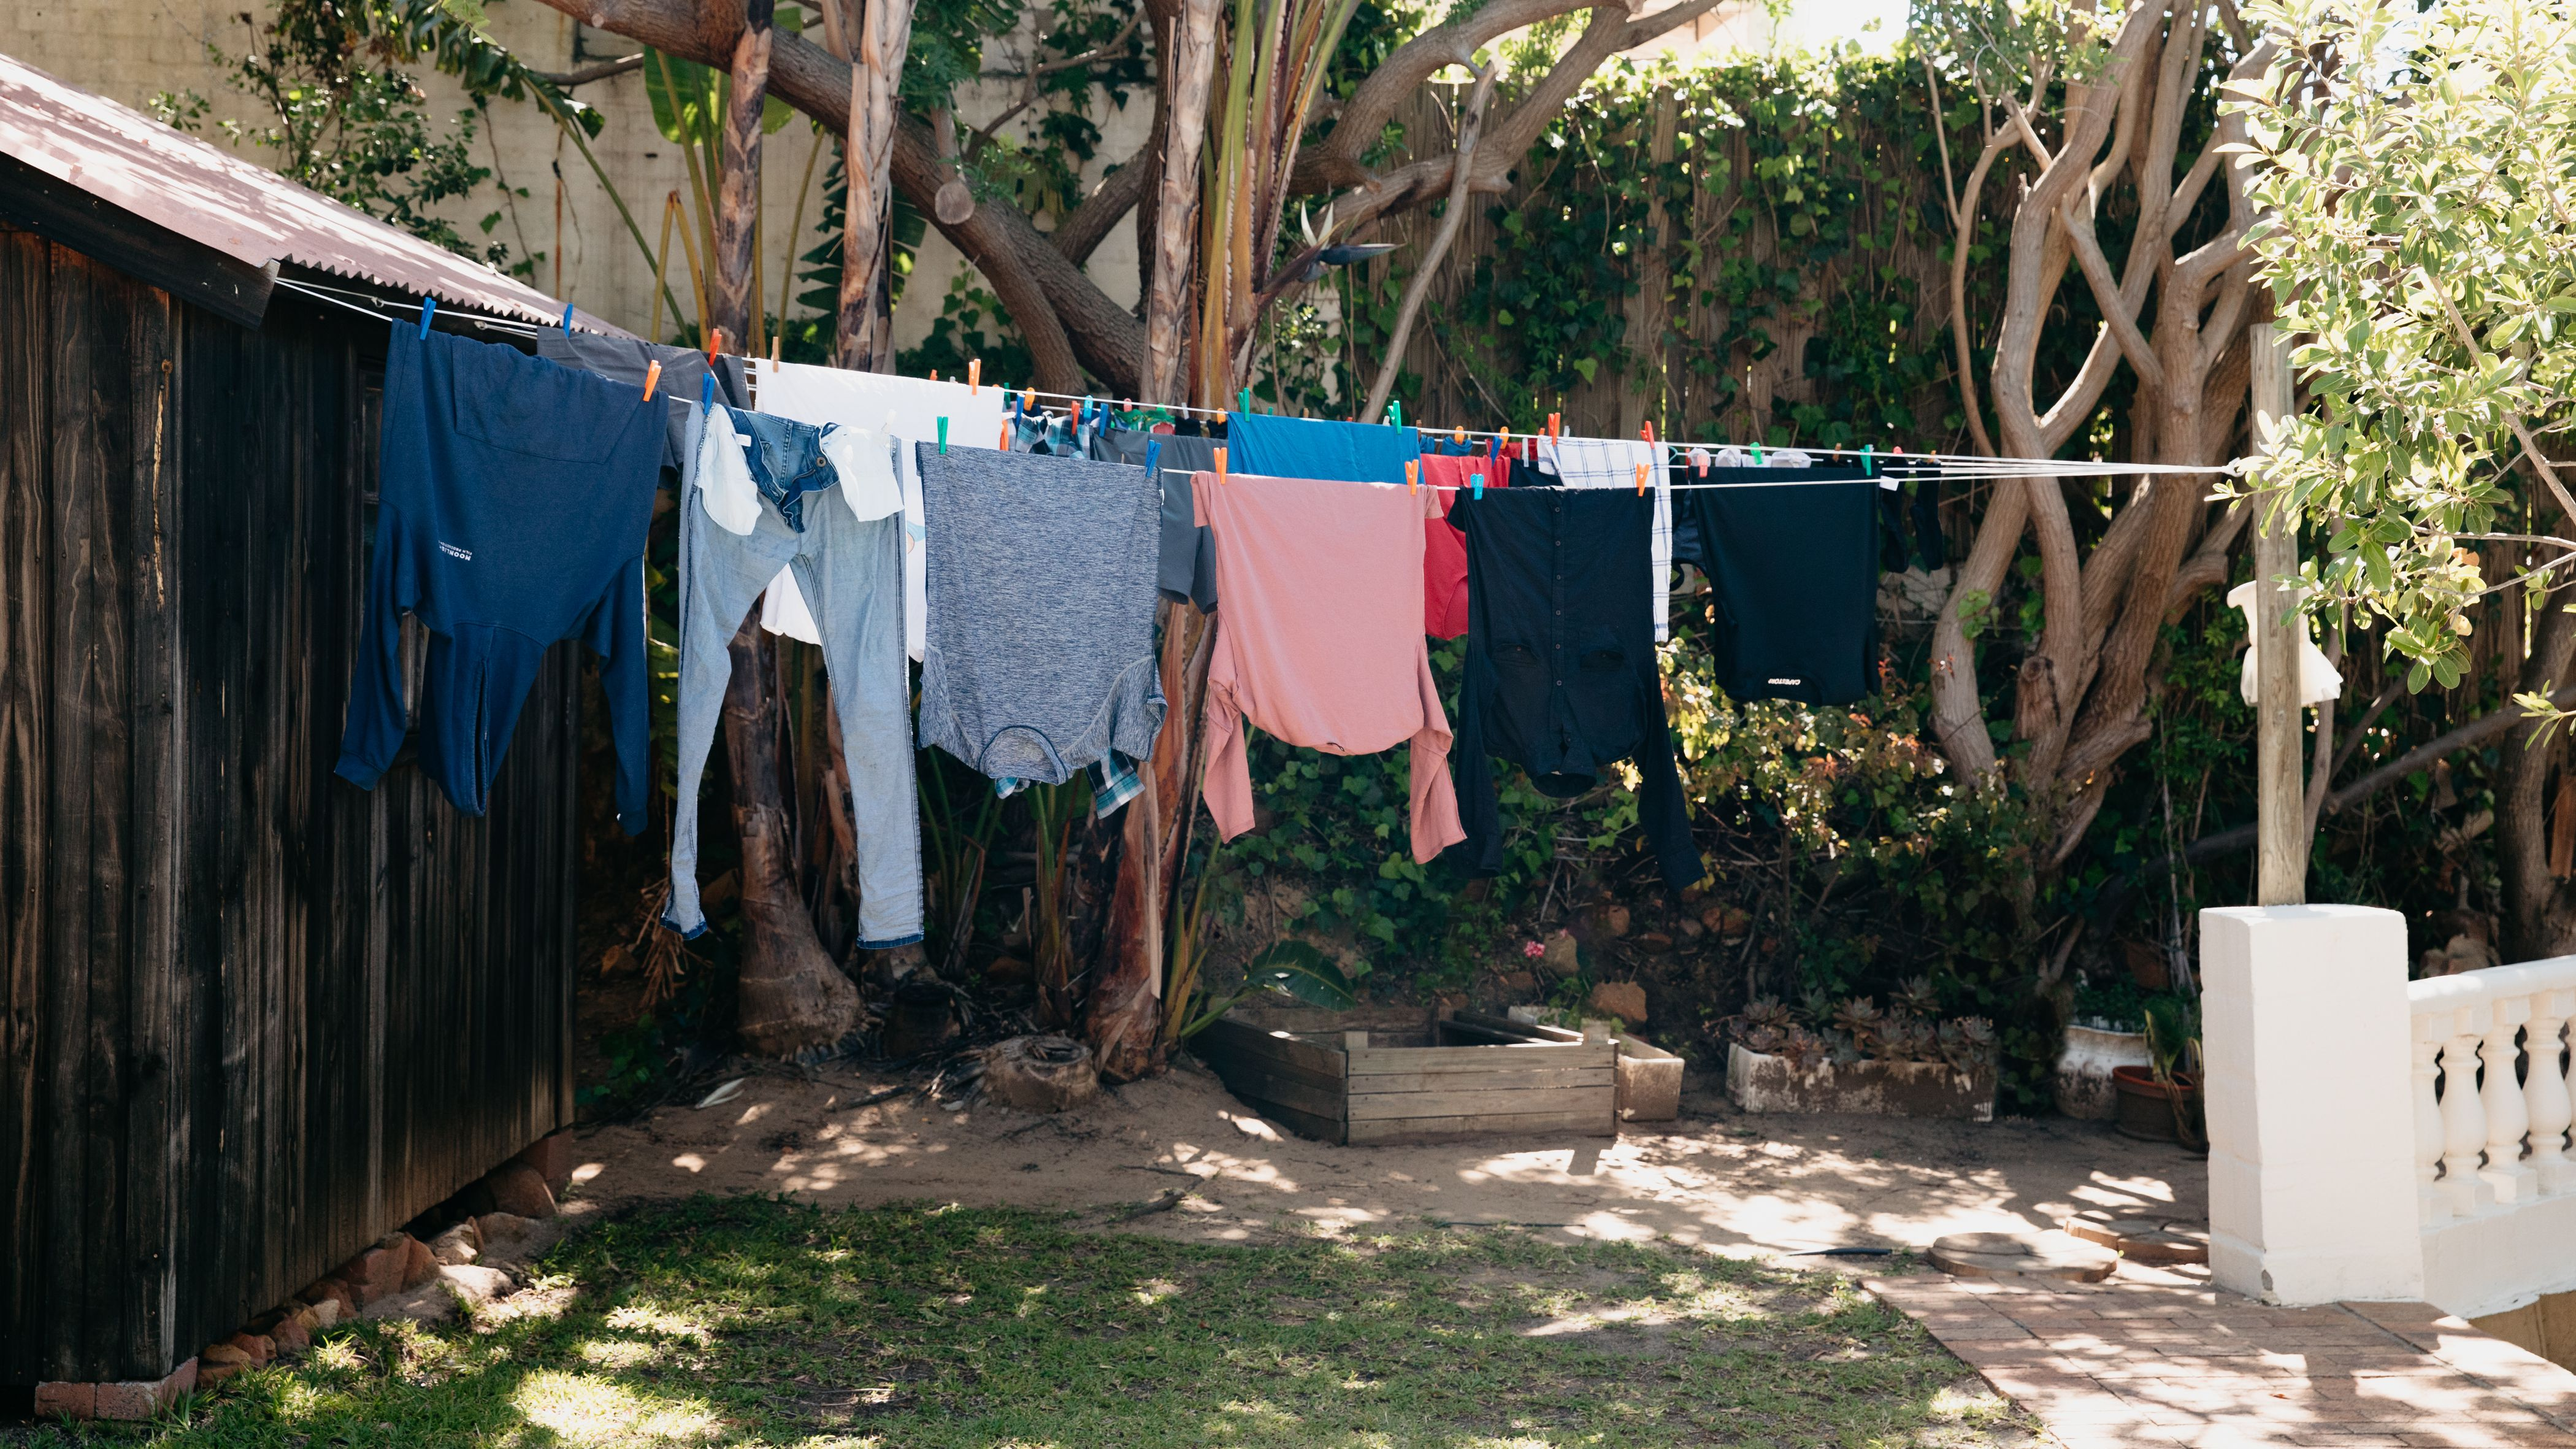 How To Hang Clothes On A Clothesline, Small Round Clothesline